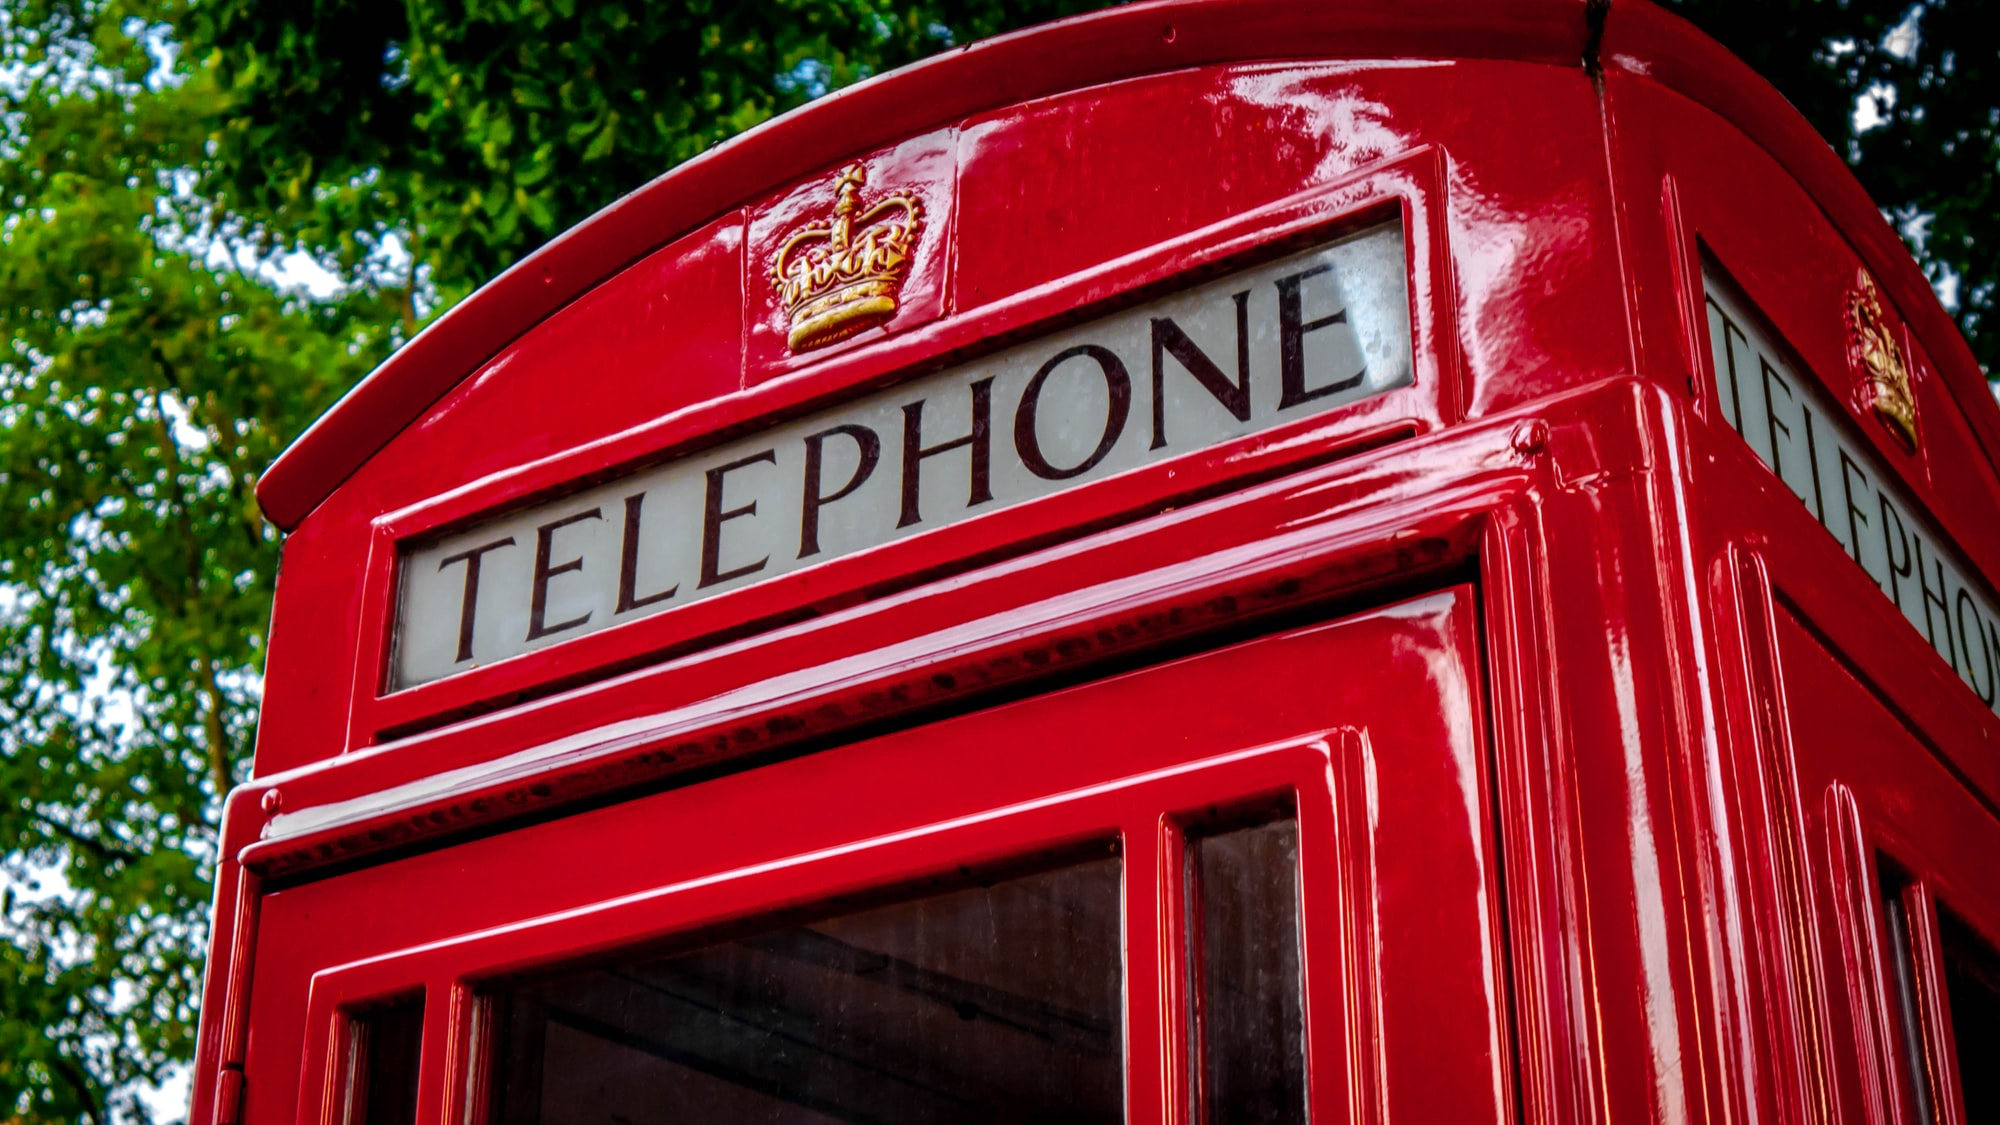 A classic, red London telephone booth